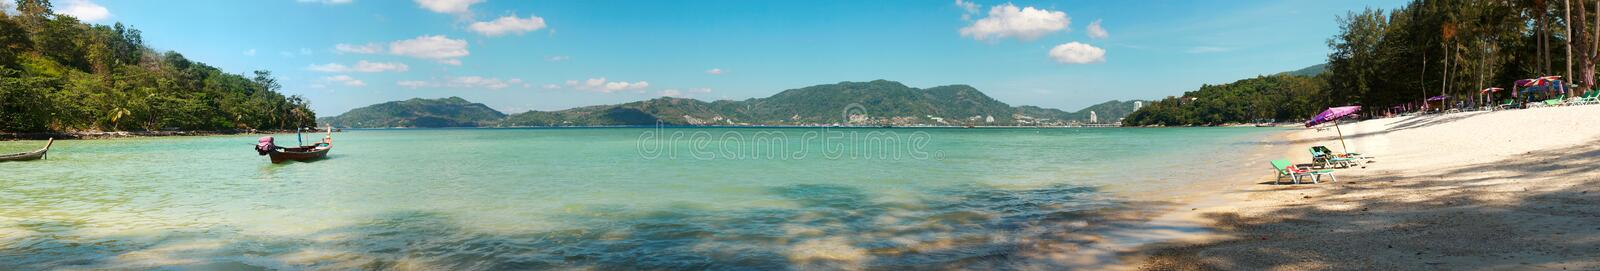 Strandpanorama stockbild